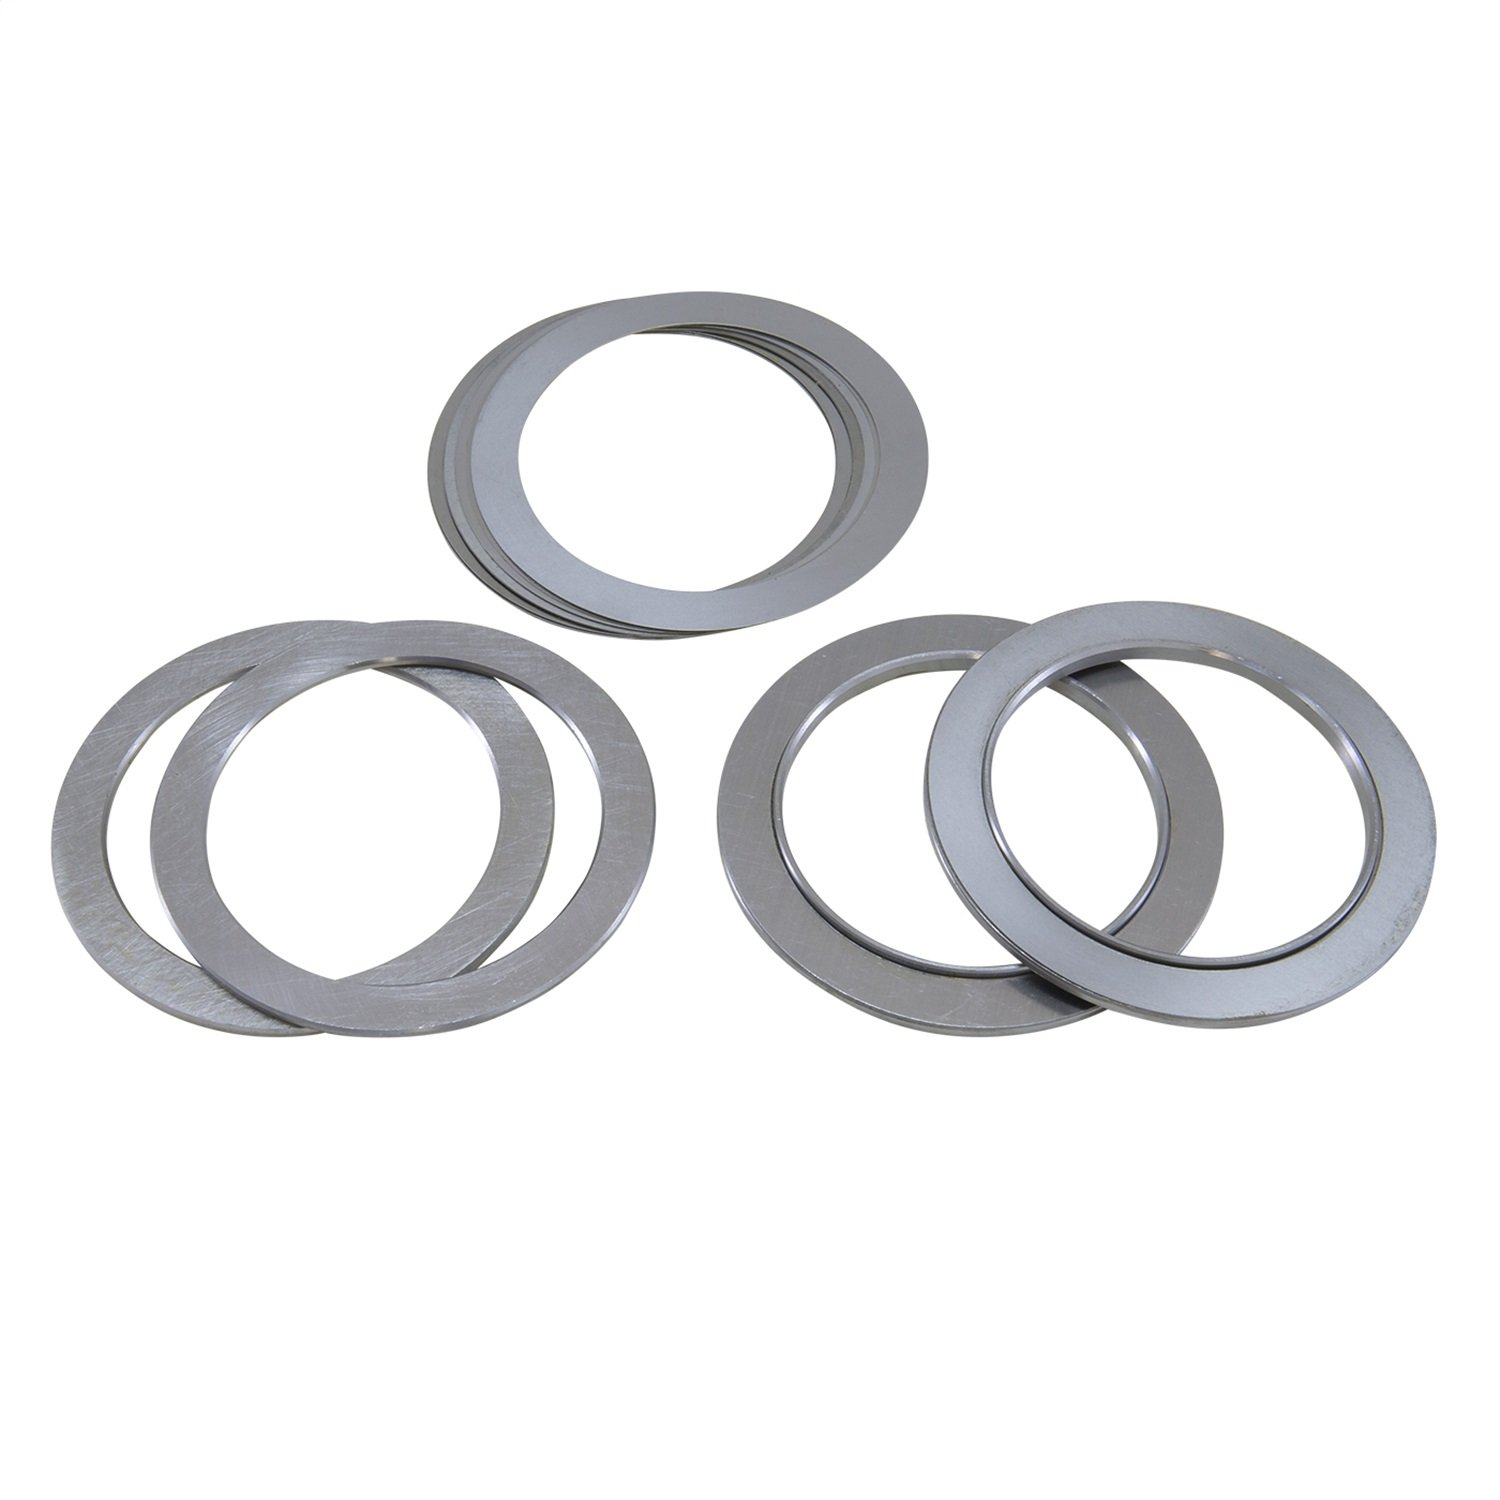 Yukon Gear & Axle (SK SSF10.25) Super Carrier Shim Kit for Ford 10.25 Differential